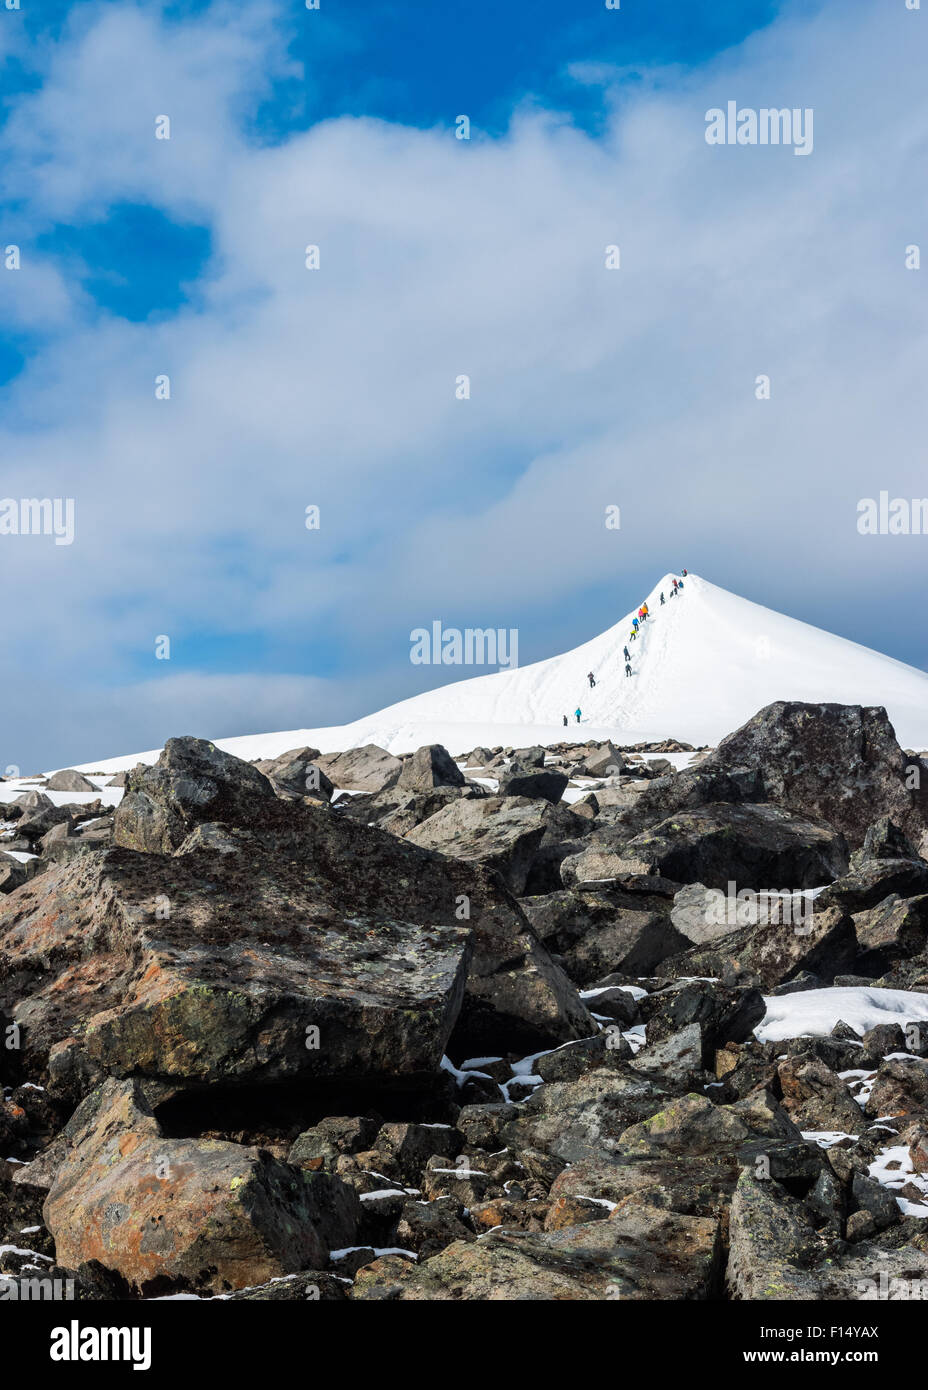 People climbing to the top of Kebnekaise. - Stock Image